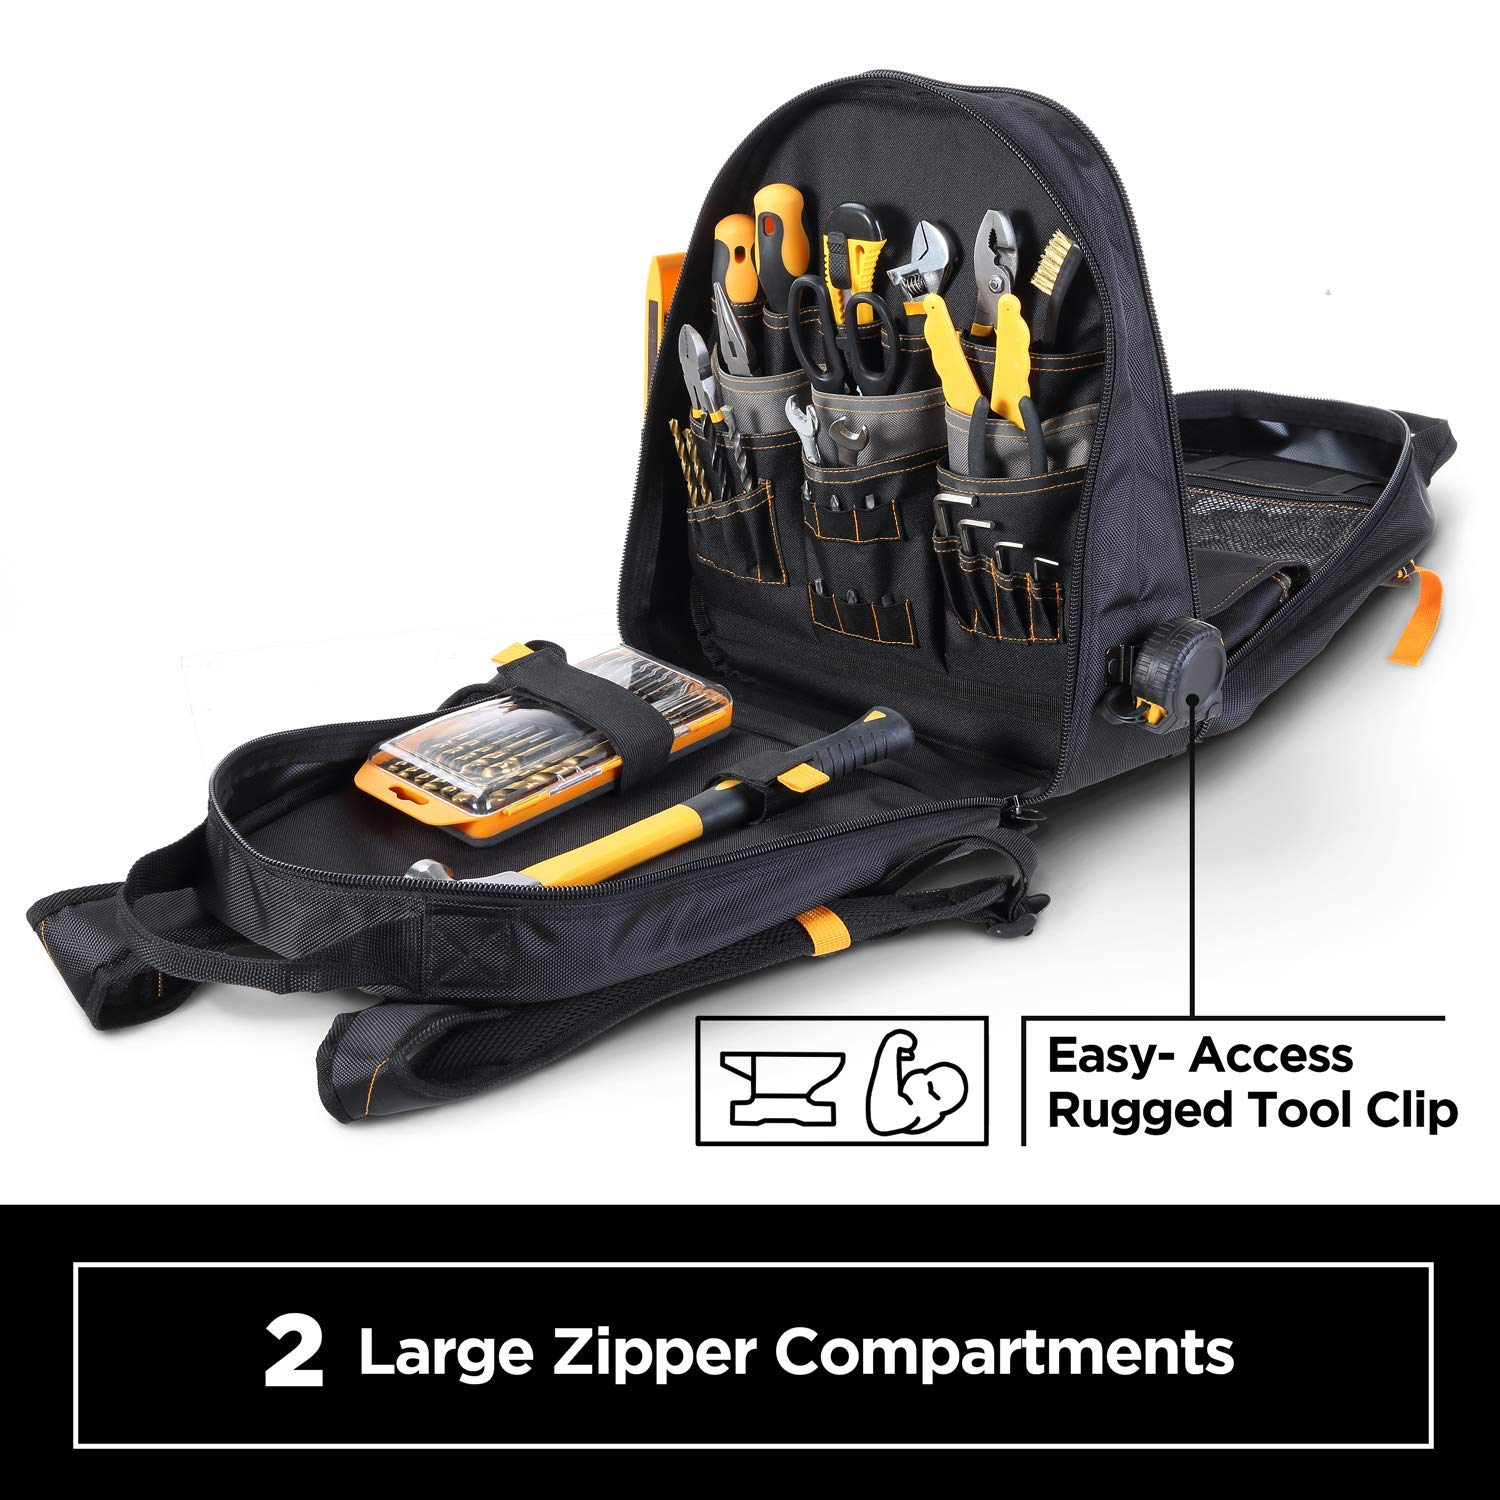 Best Quality New Tool Set - All Complete Amazing Basic Professional Automotive Metric Hand Tool Box Set /Toolkit For Home